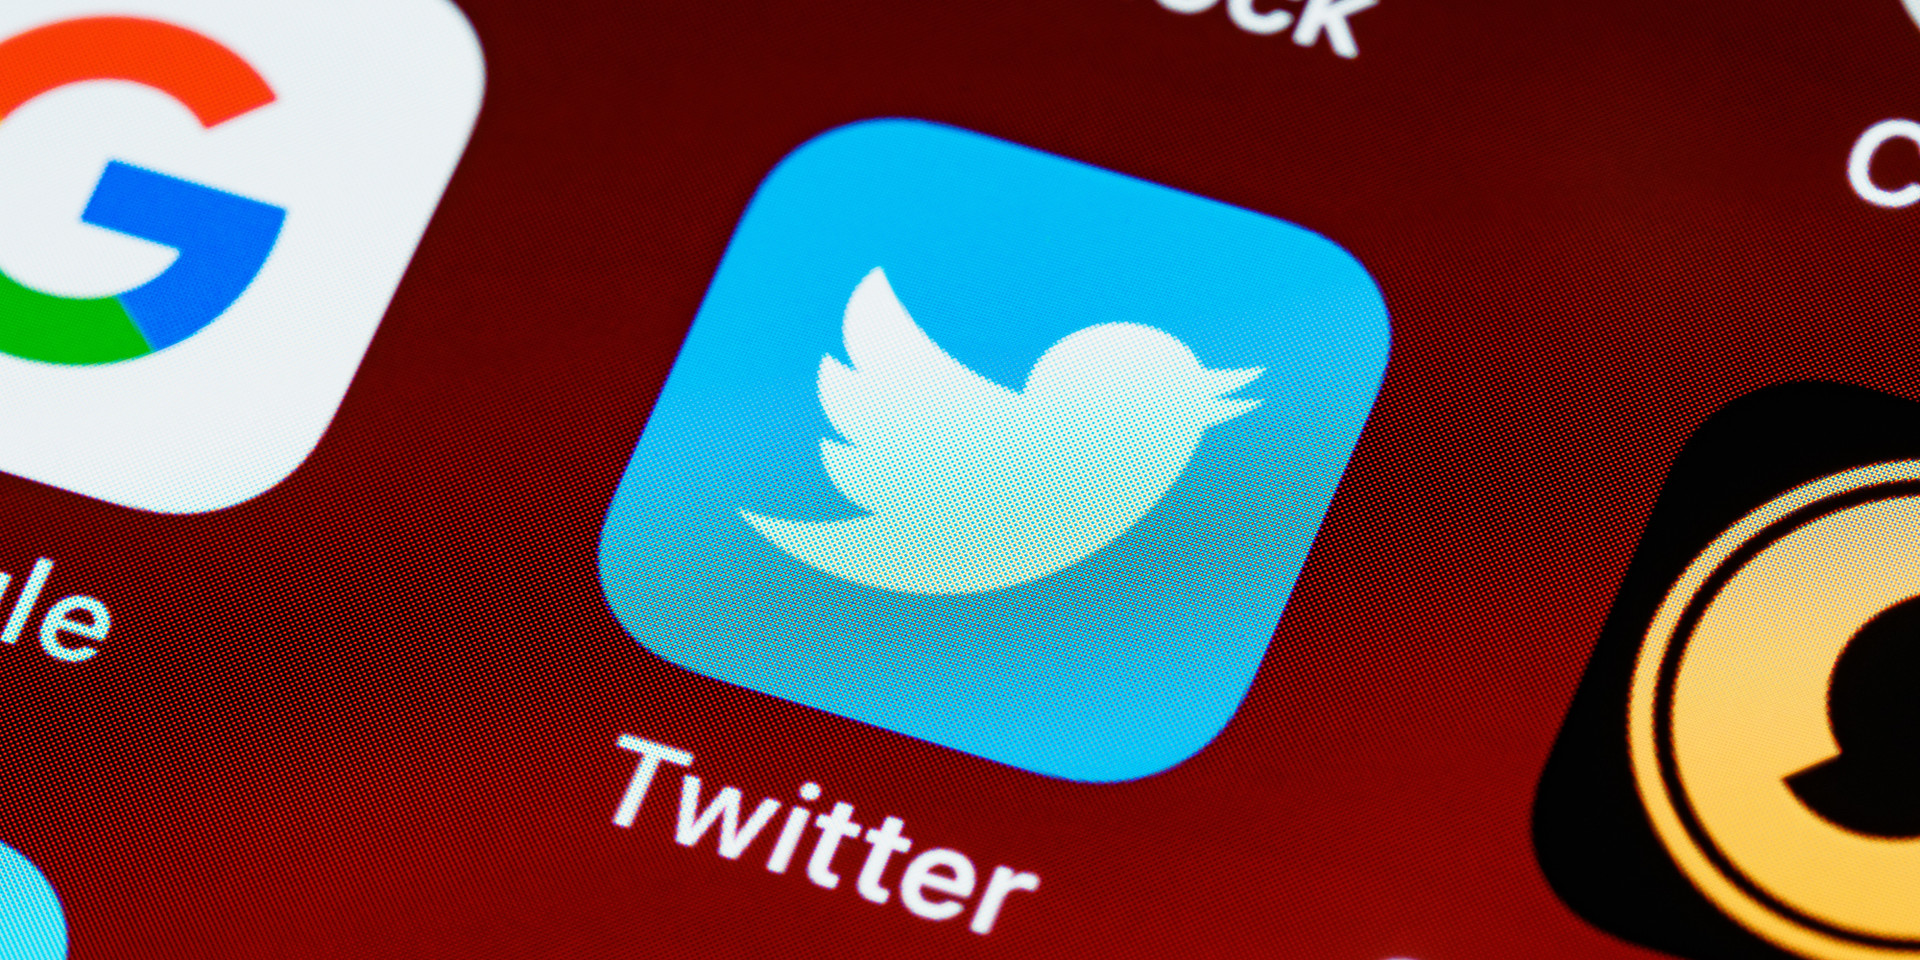 Twitter is testing new ways to fight misinformation